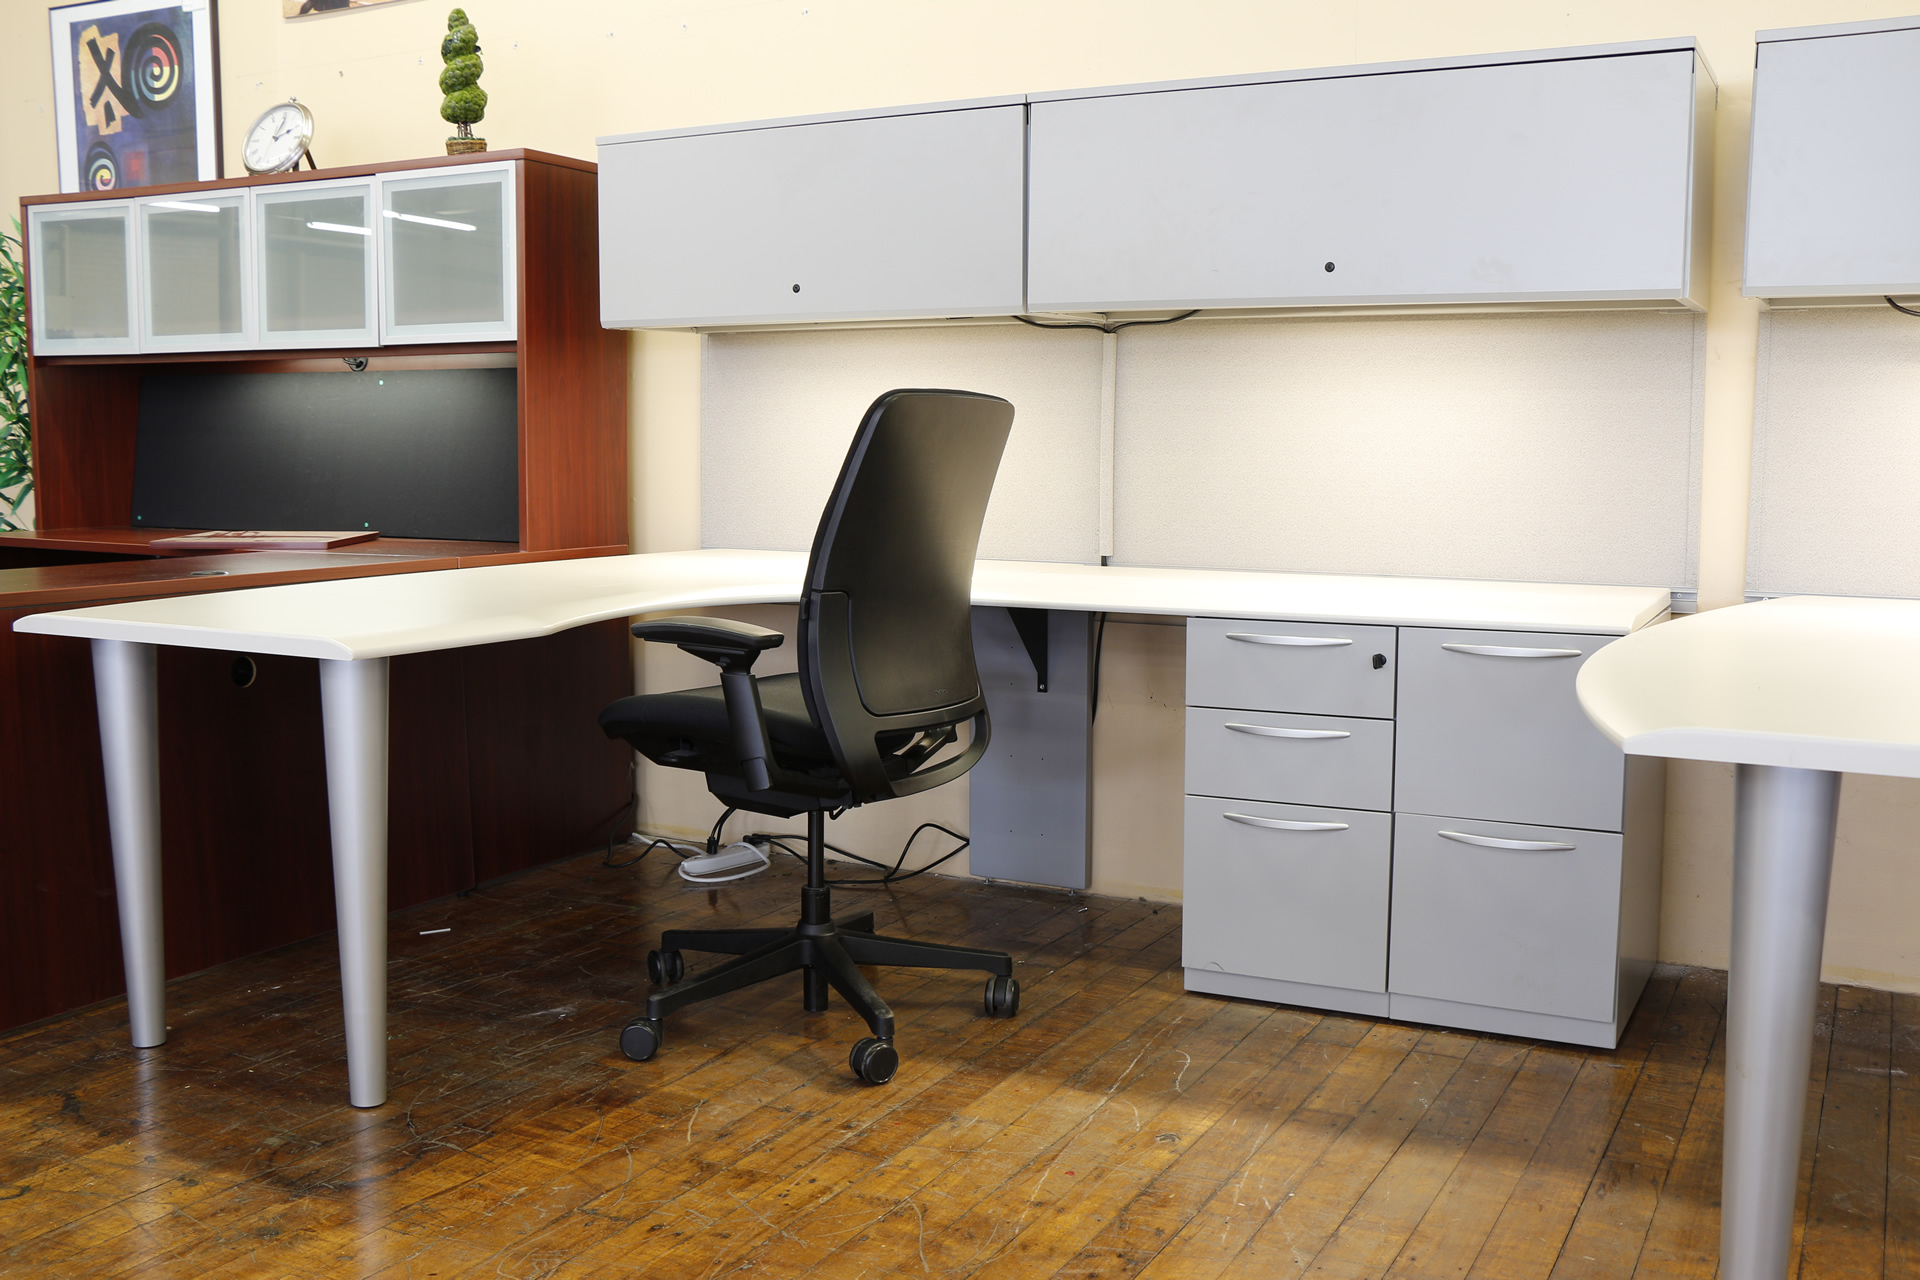 peartreeofficefurniture_peartreeofficefurniture_mg_4404.jpg